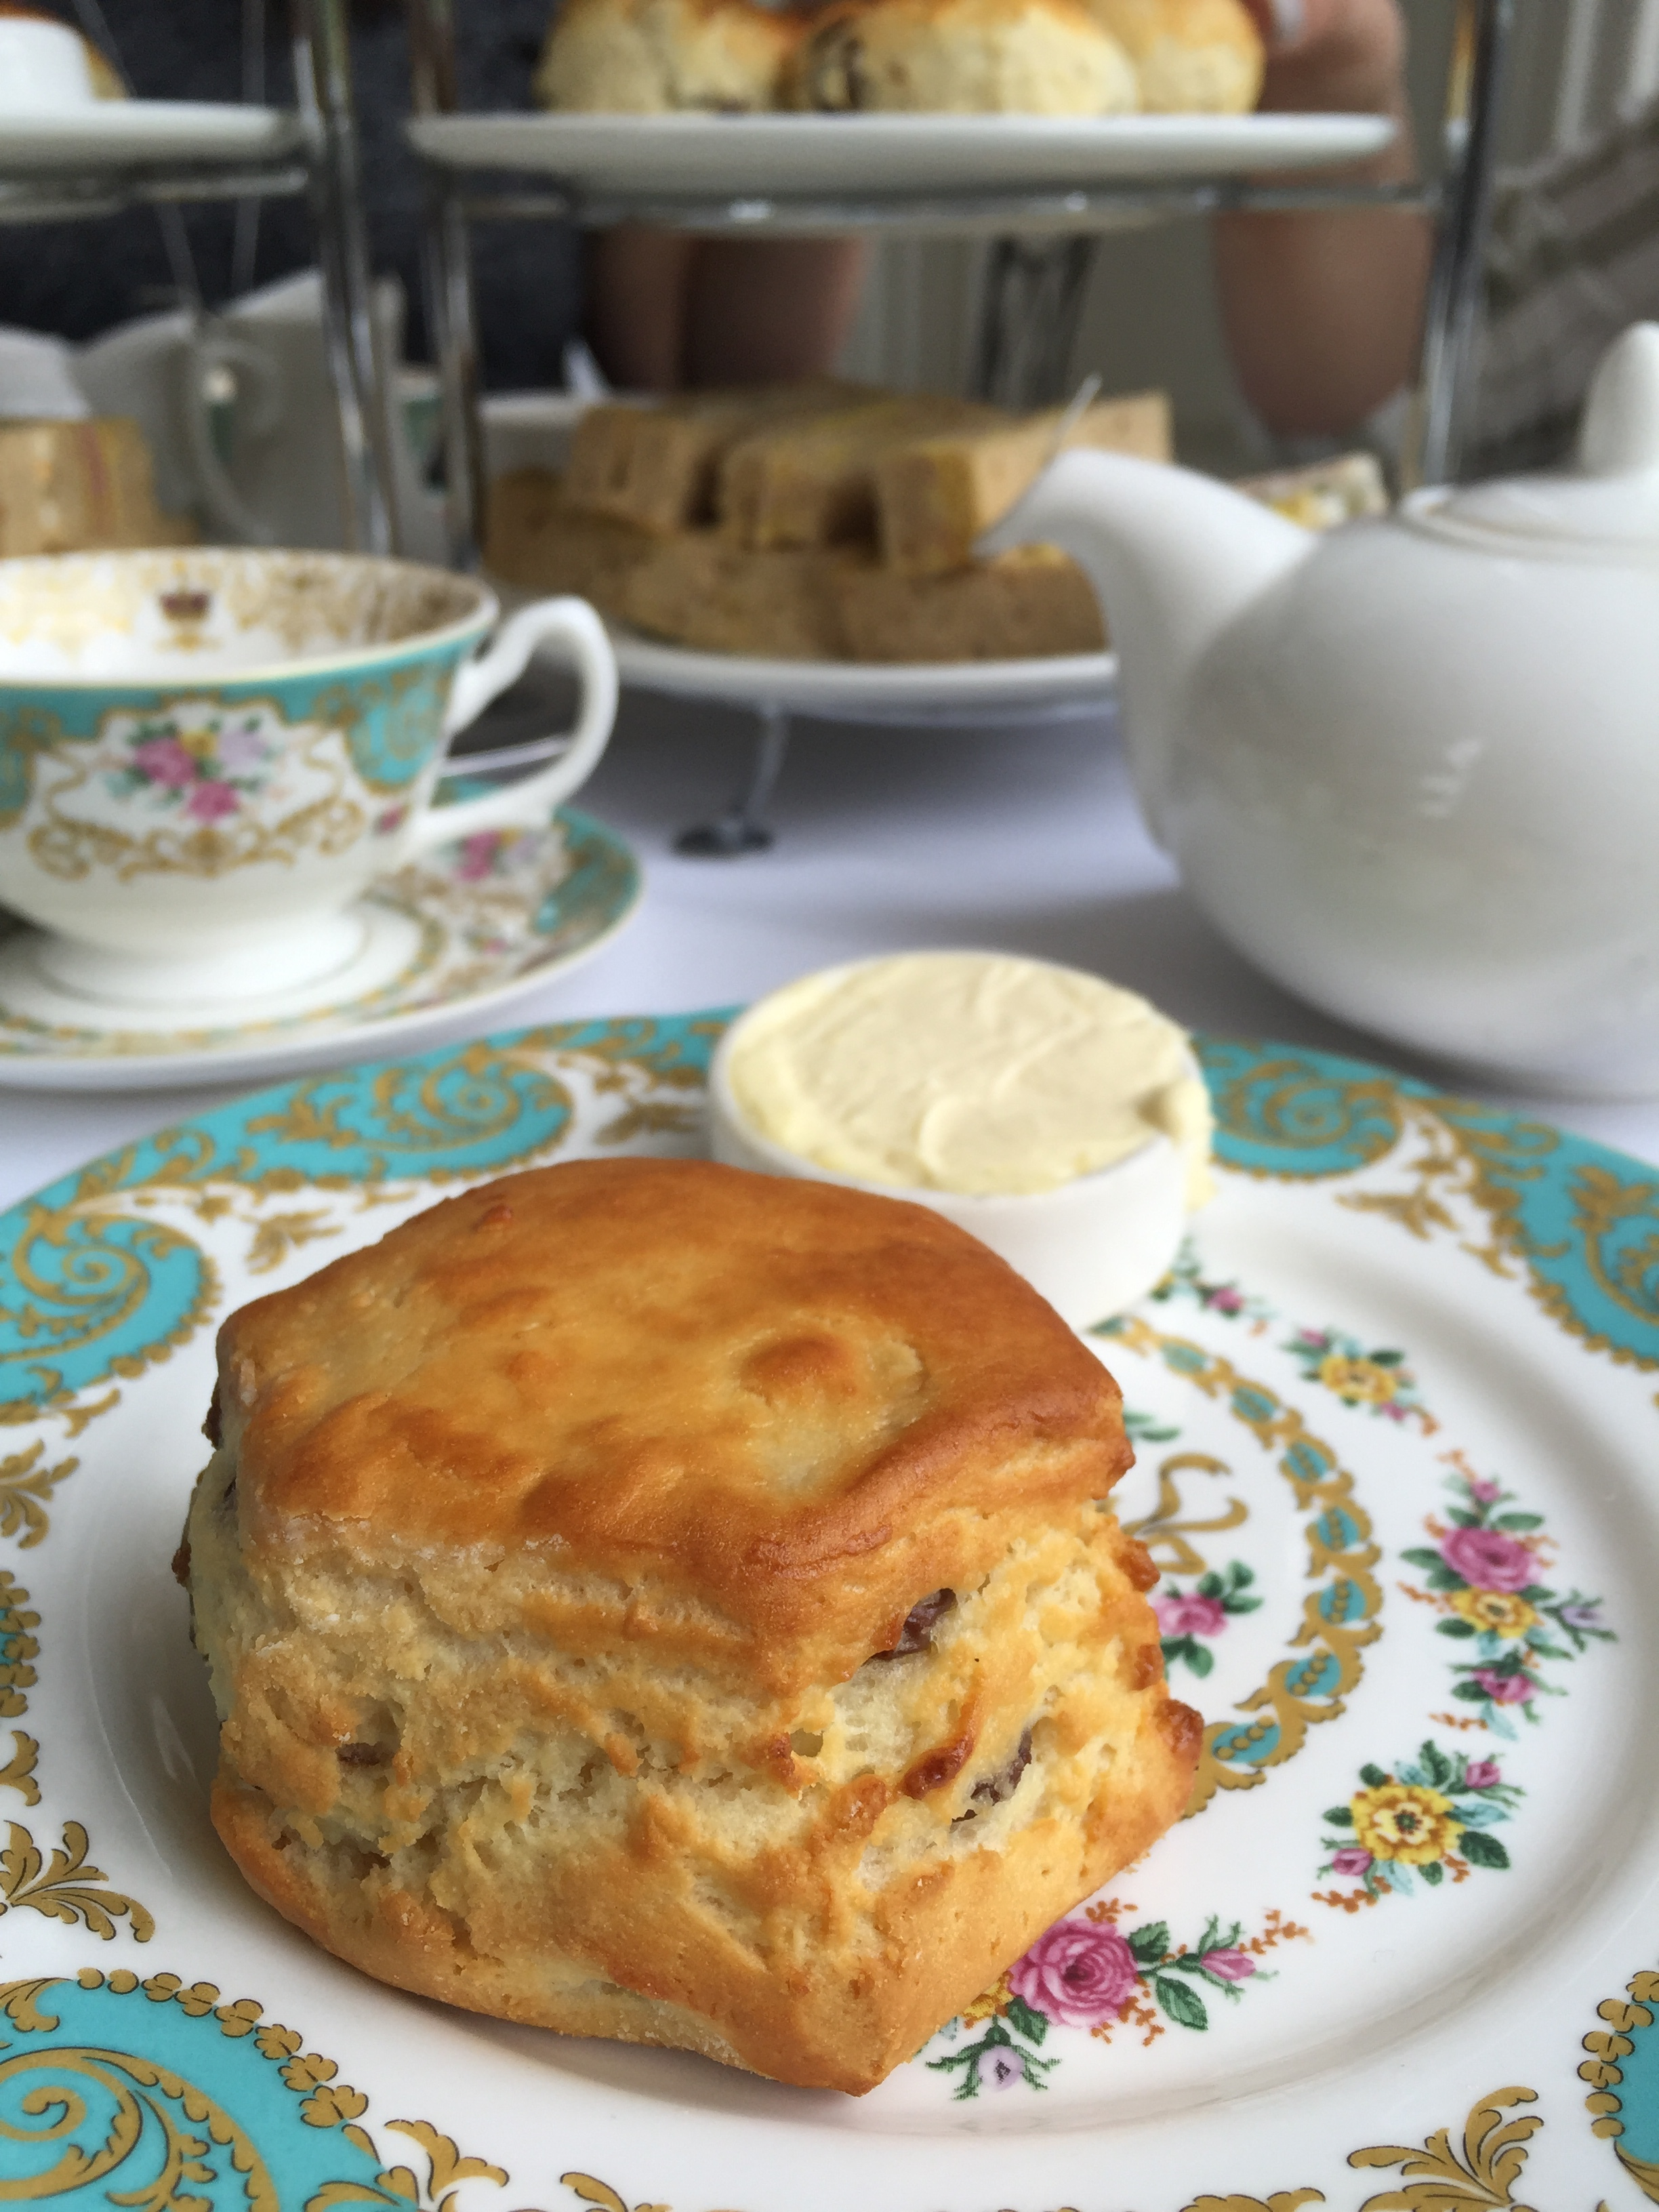 An incospicously gluten free scone at The Orangery.